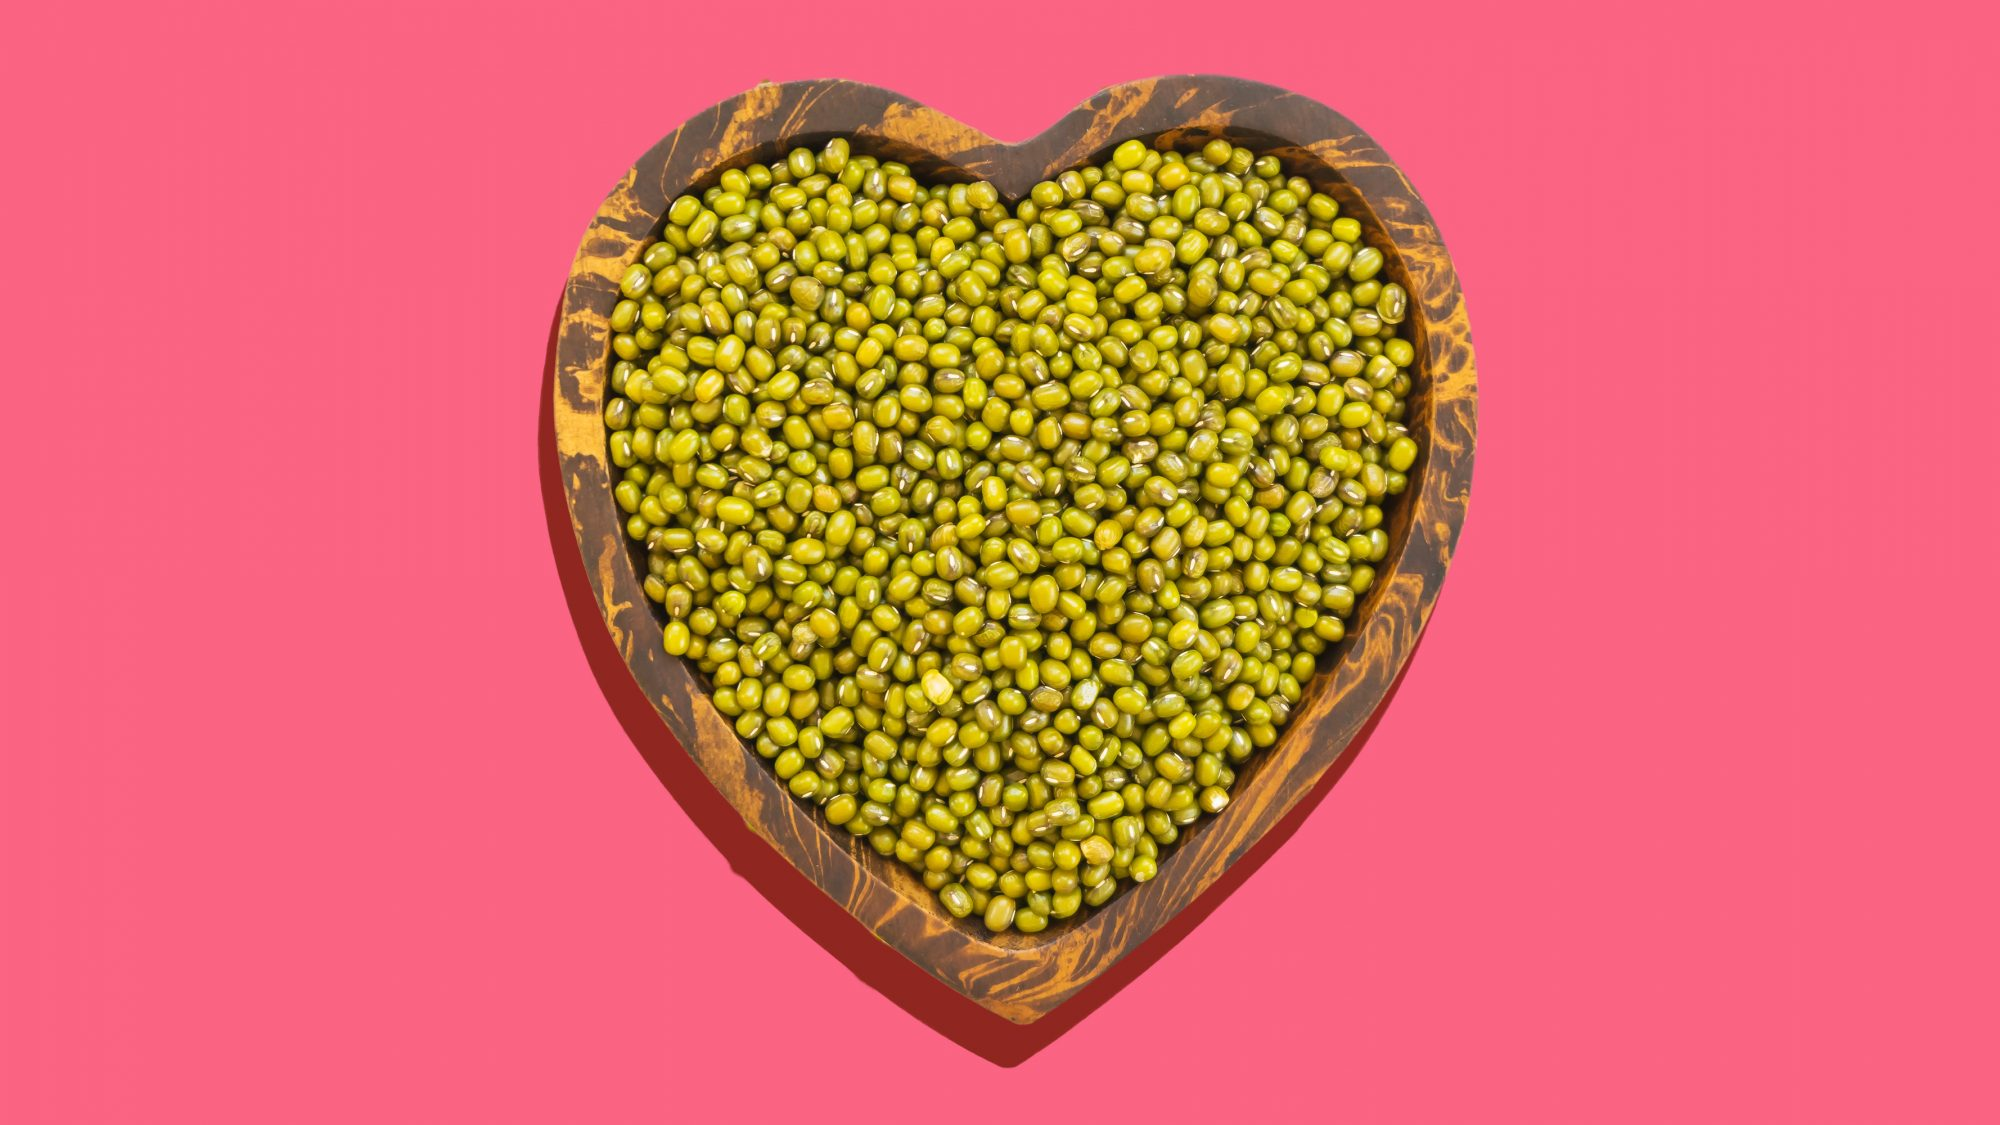 Directly Above Shot Of Mung Beans In Heart Shape Bowl Over White Background